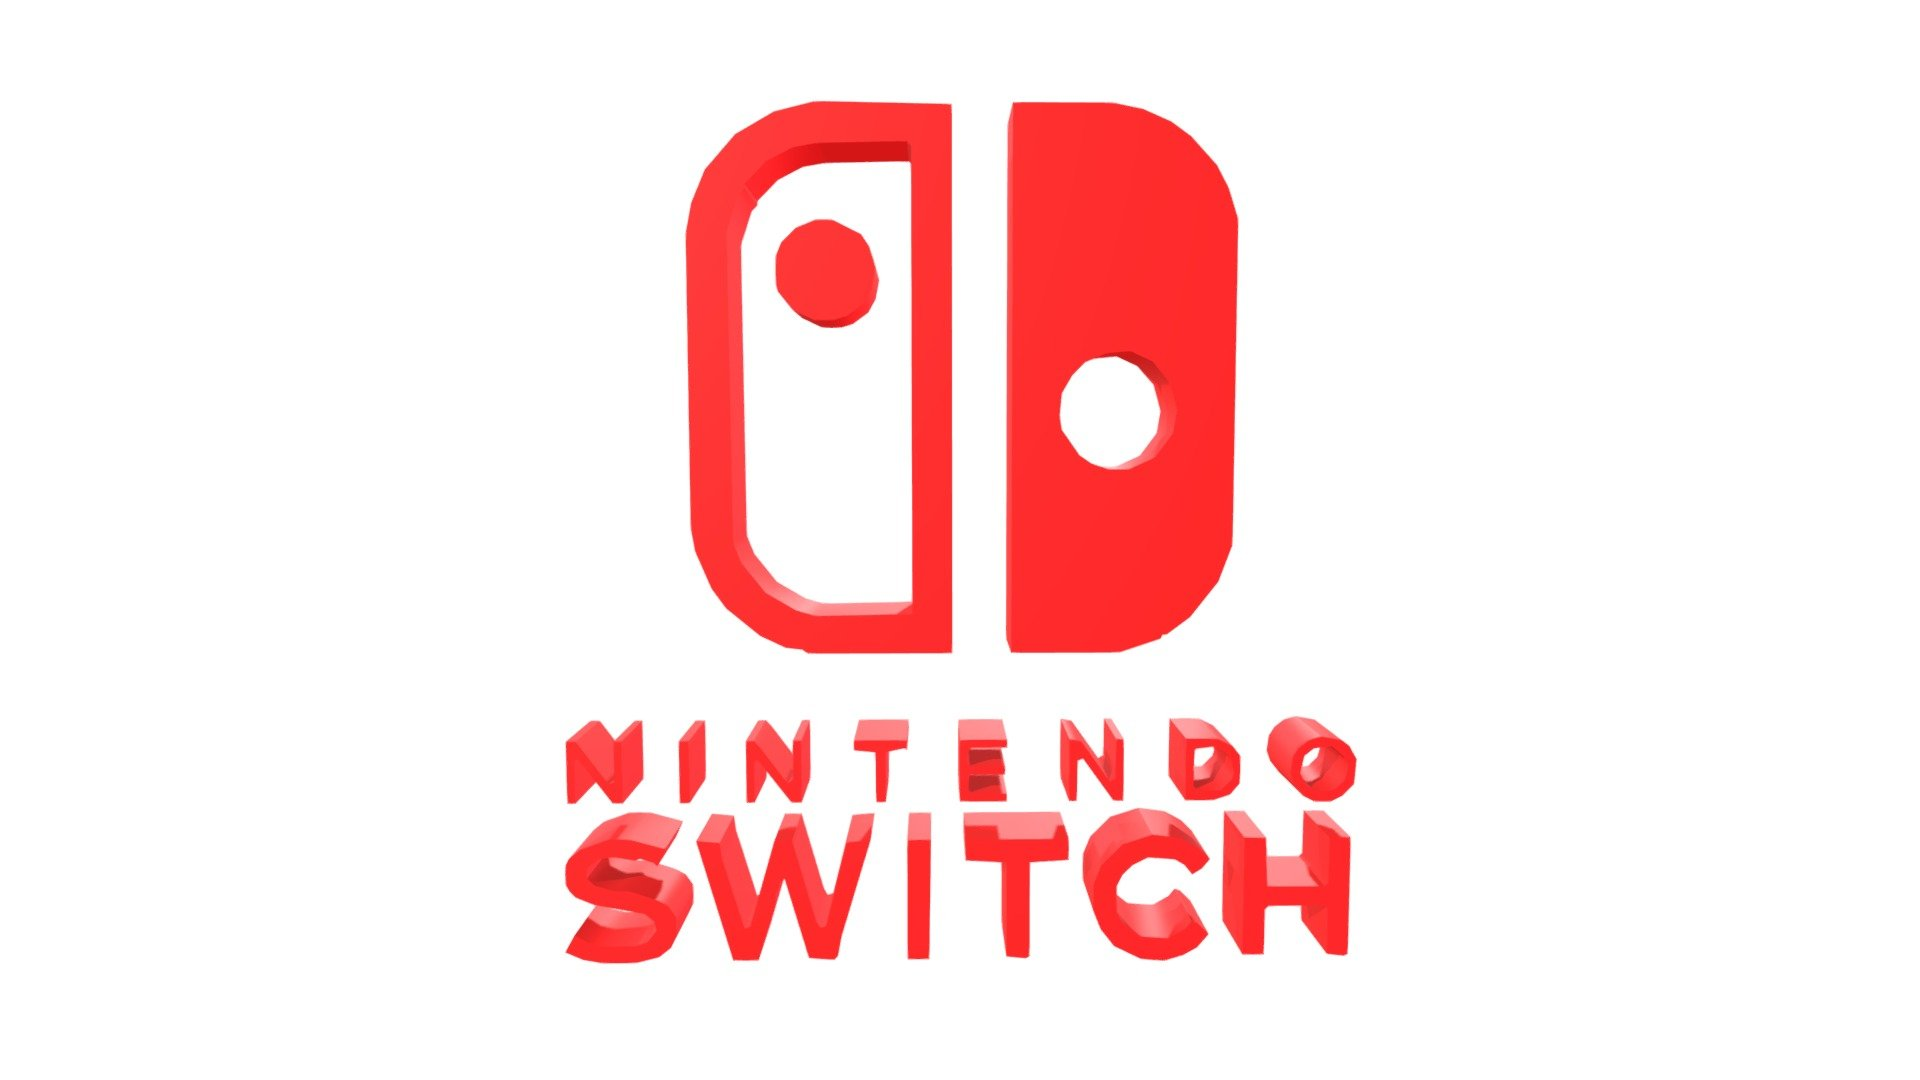 Nintendo Switch Logo 3d Model By Carapapa Carapapa 6eef063 Sketchfab